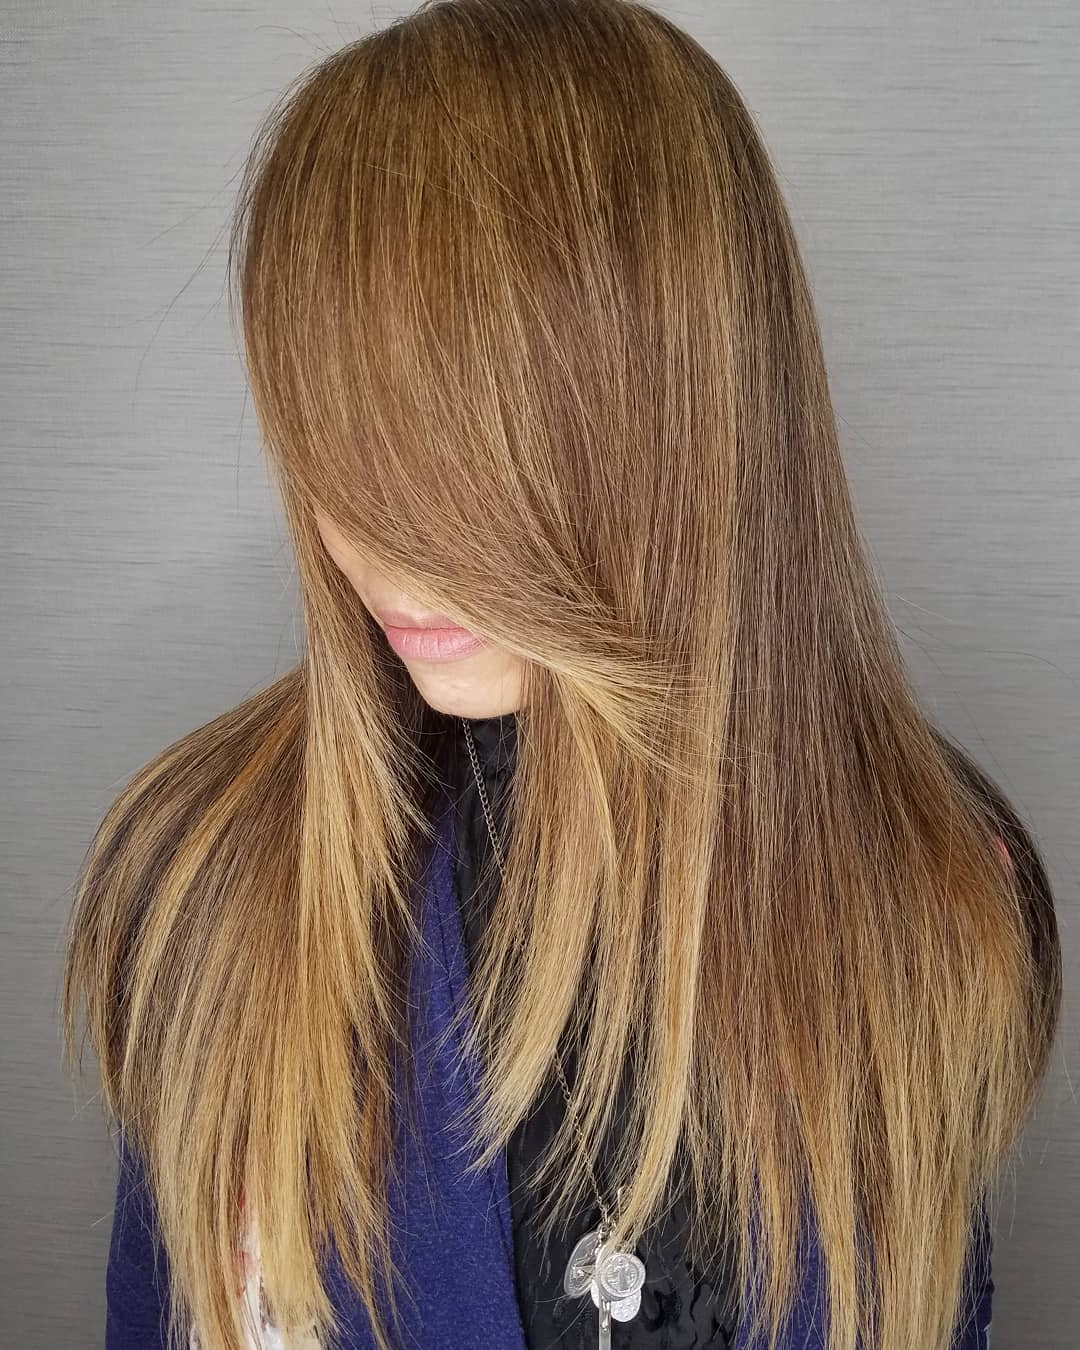 Trendy Hairstyles And Haircuts For Long Layered Hair To Rock With Recent Straight Shaggy Locks Long Hairstyles (View 9 of 20)